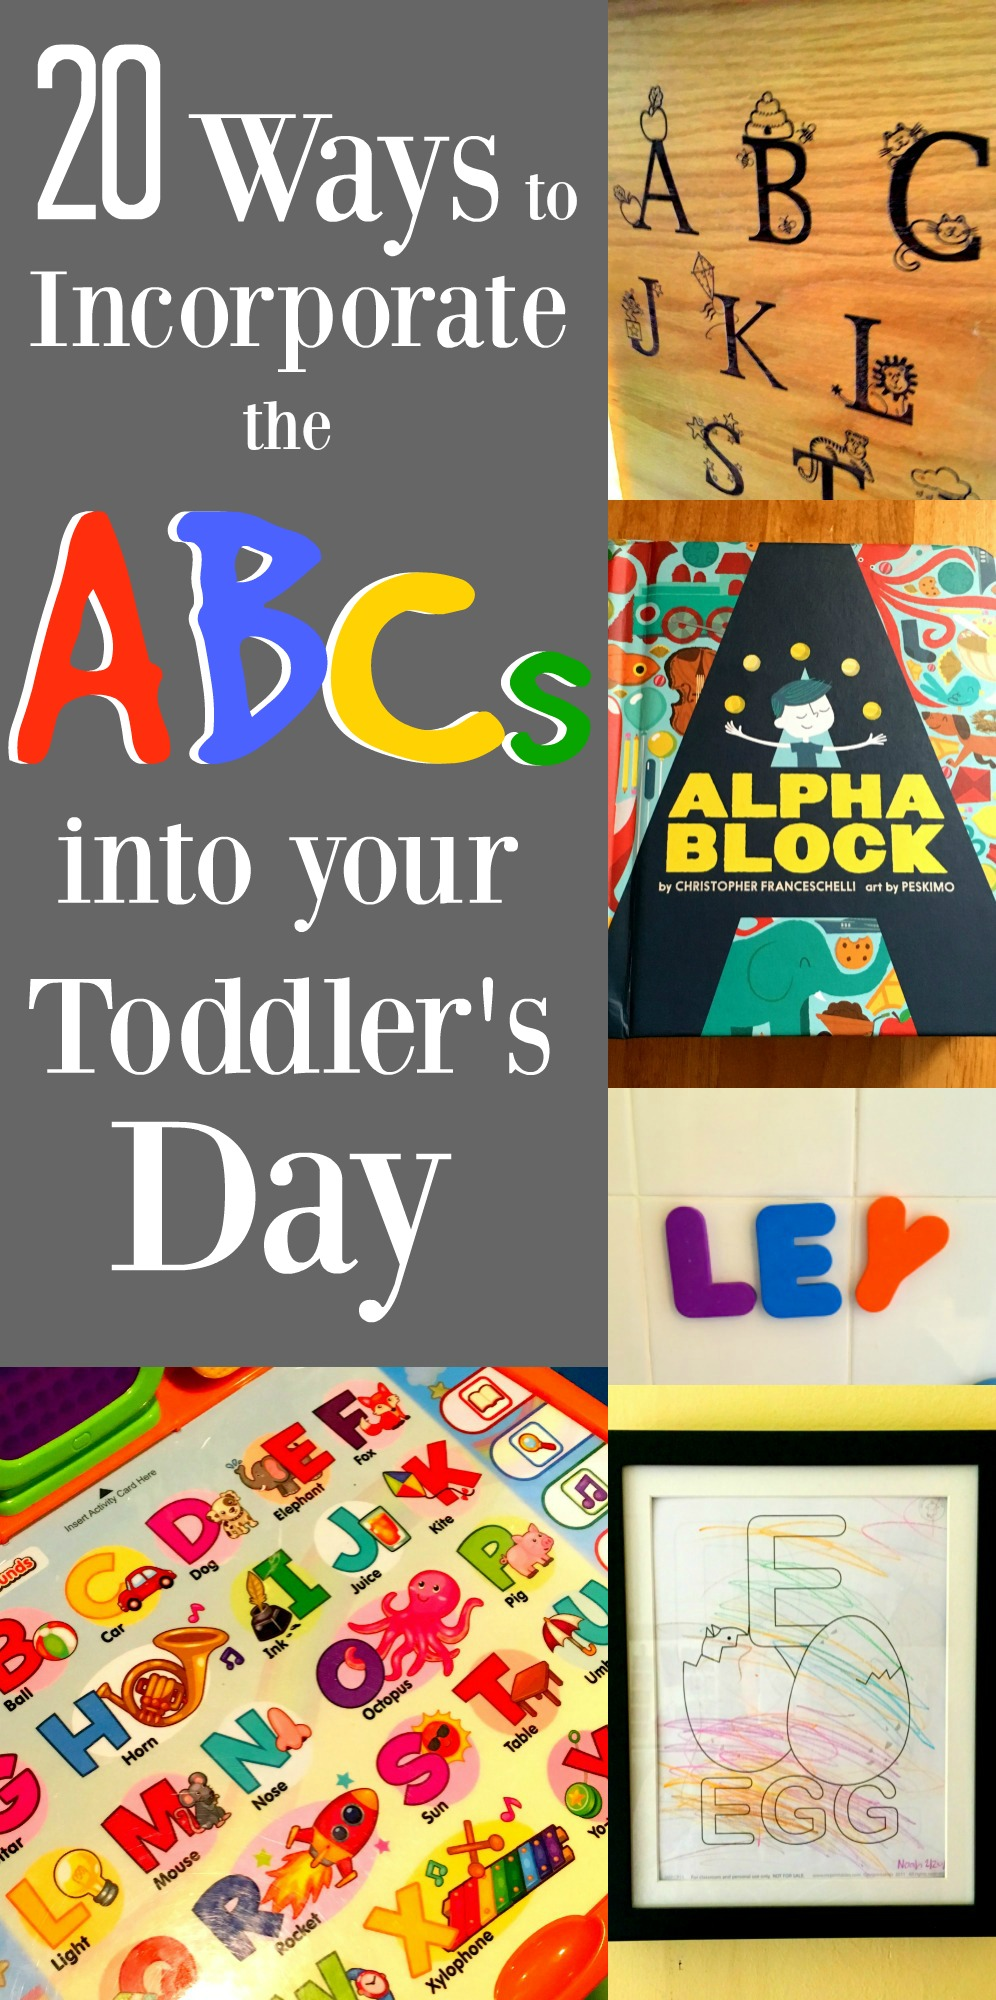 I love watching my son learn the ABC's and there are so many fun ways to teach him! Check out this list for some good ideas.